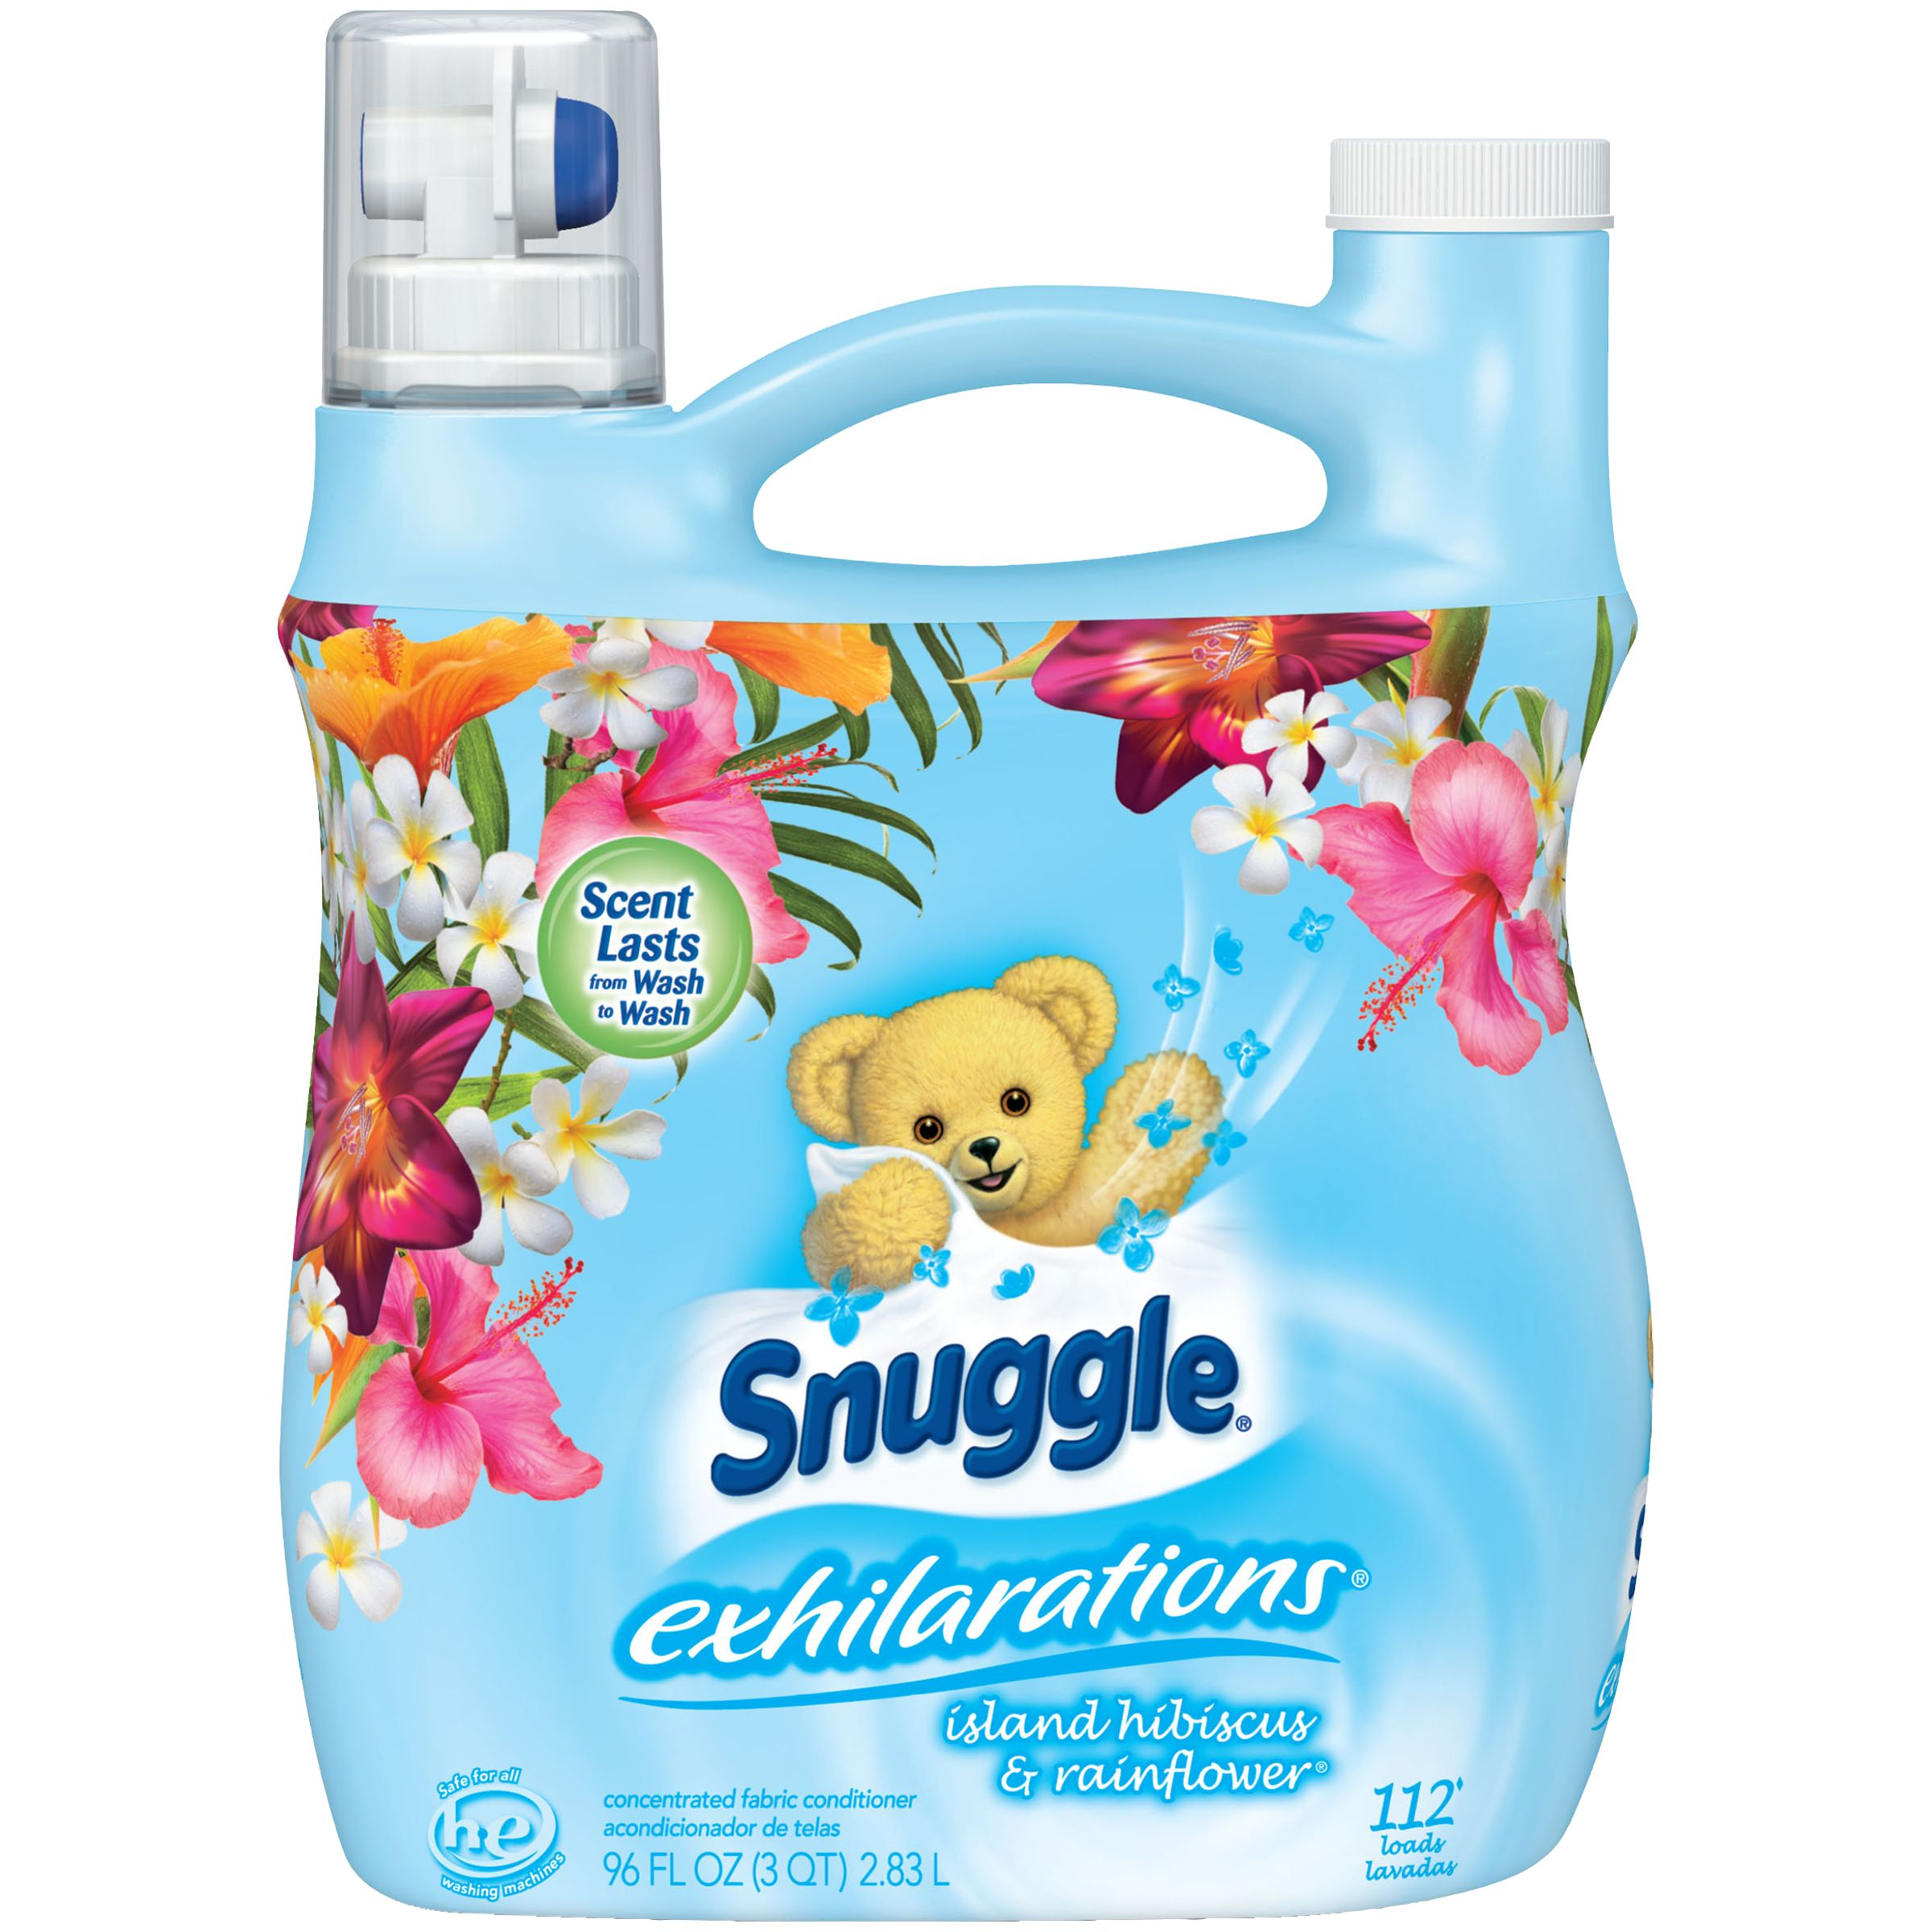 Snuggle Exhilarations Liquid Fabric Softener, Island Hibiscus & Rainflower, 96 Ounce, 112 Loads